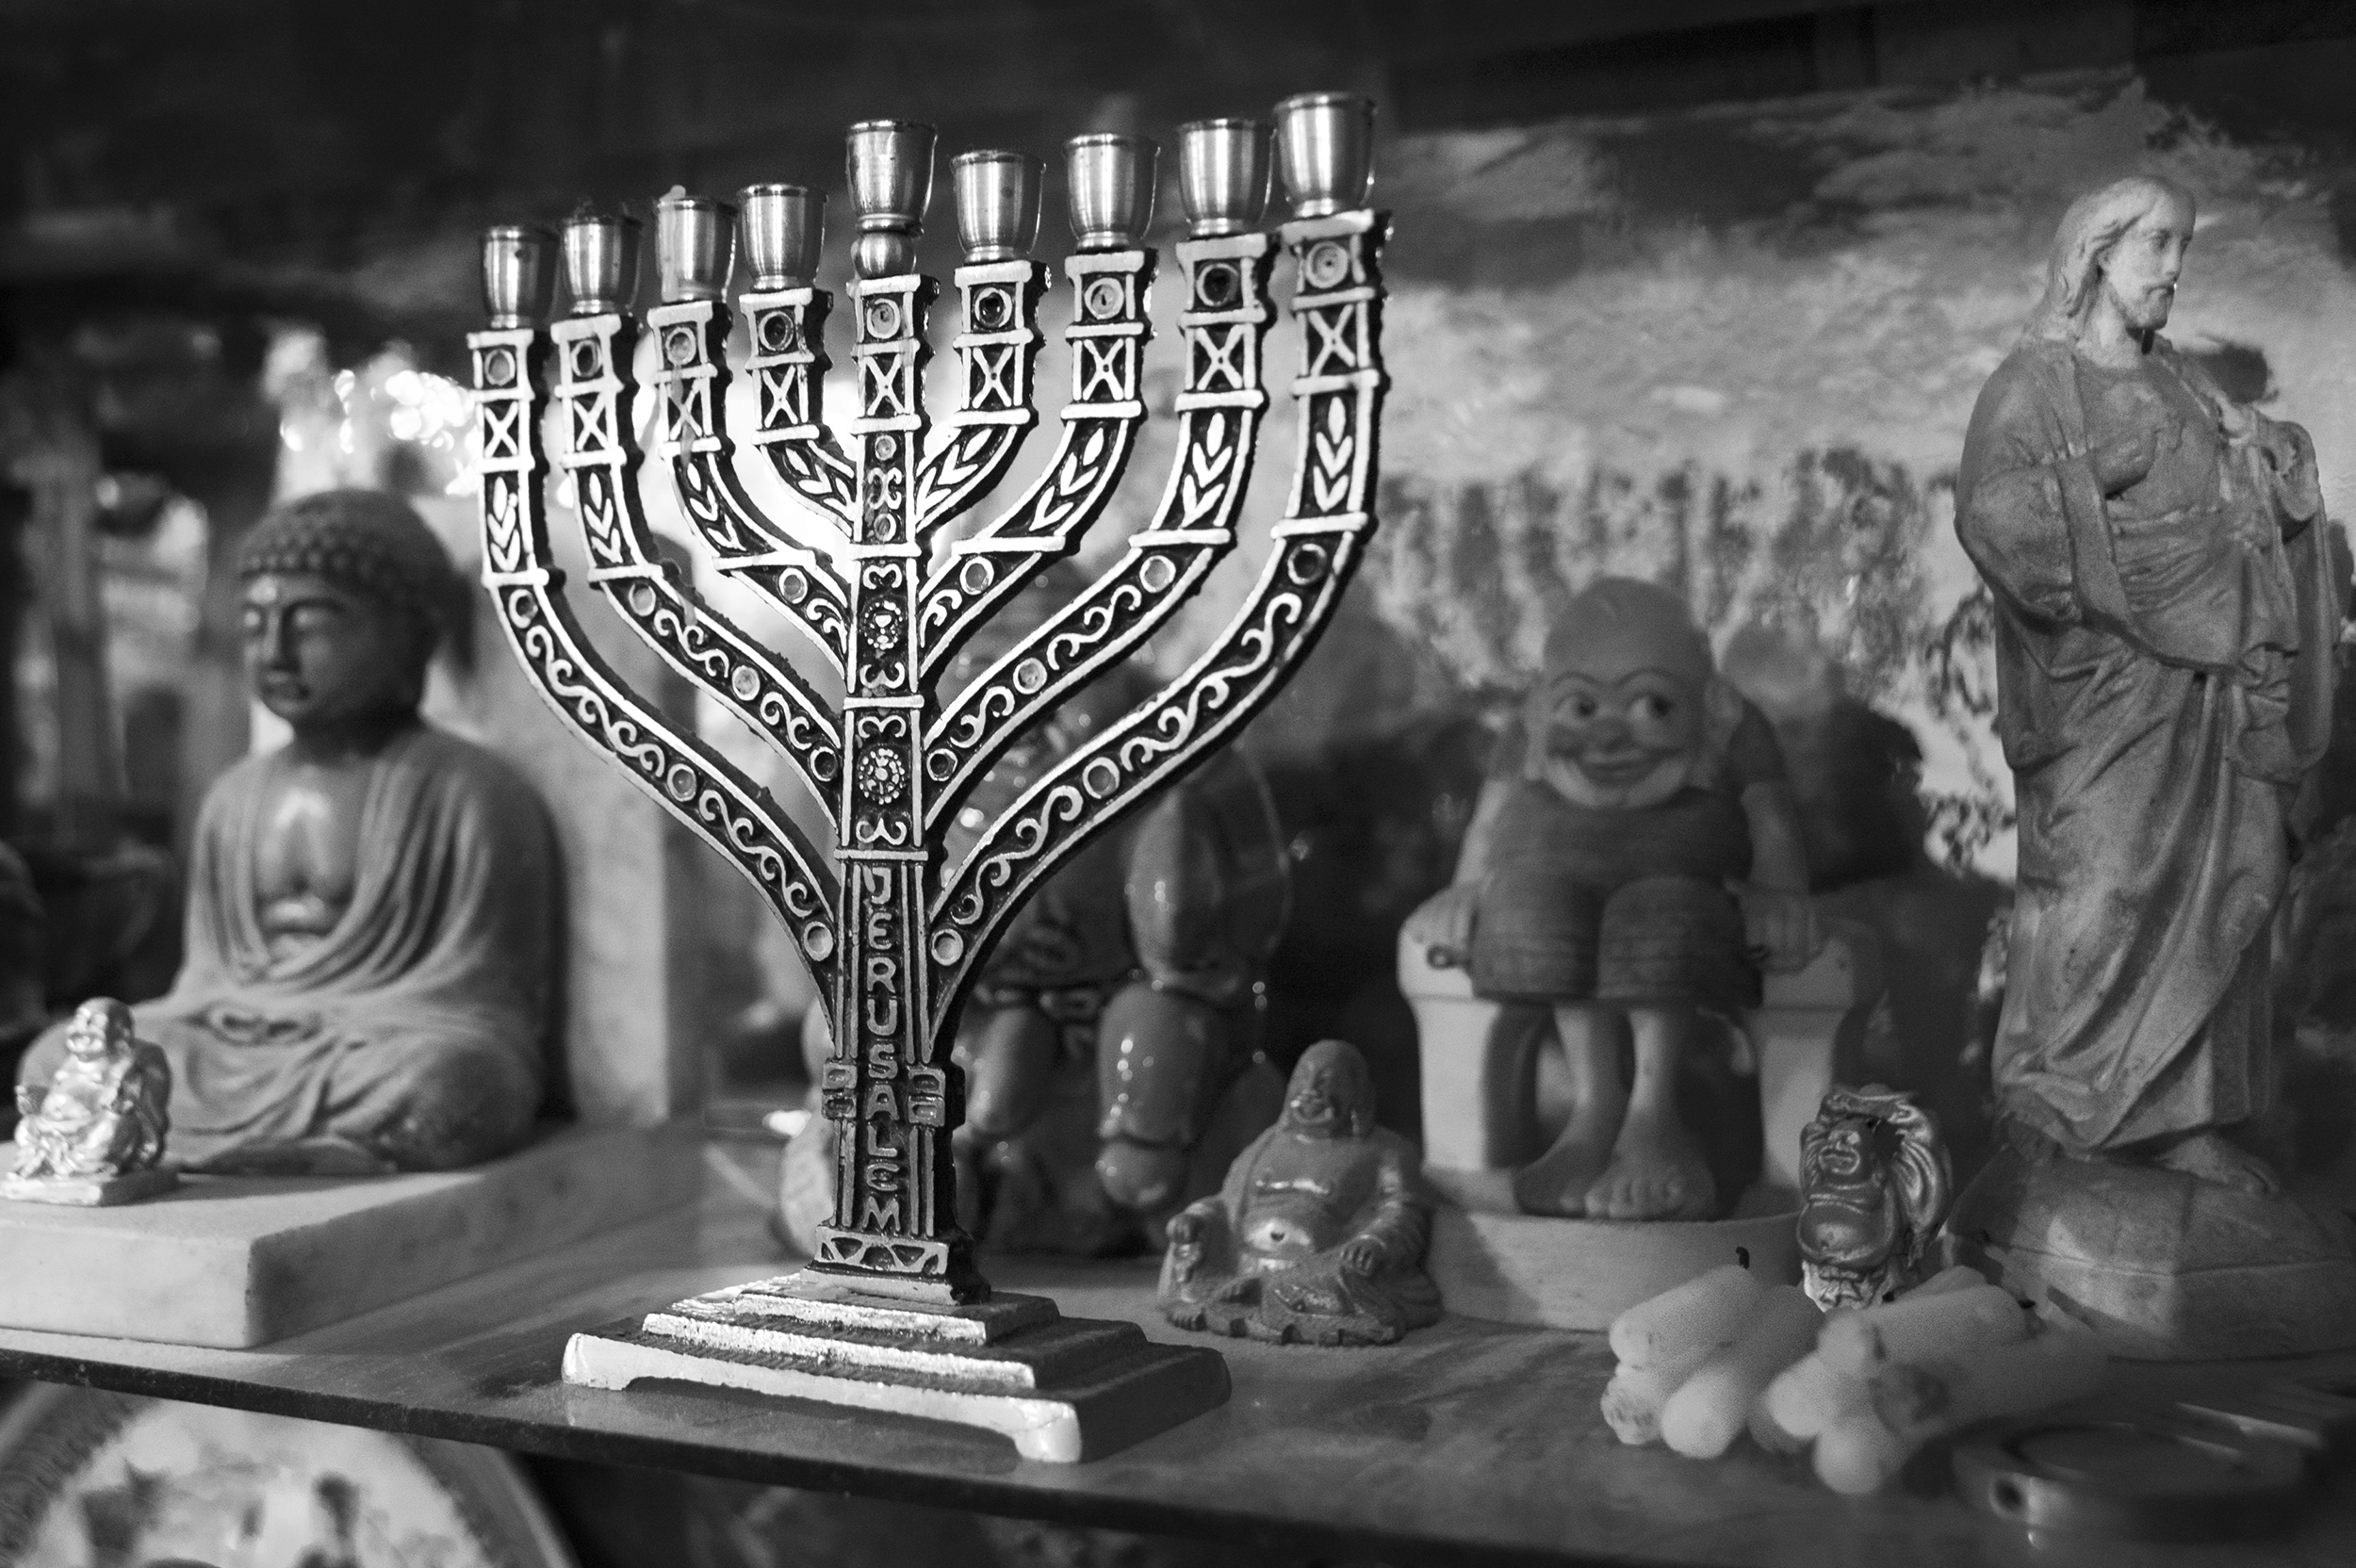 """The menorah stands on a crowded shelf in the home of Paul Spitzer (not pictured), the son of Holocaust survivor Amram Yehekztel on January 7, 2015. Though now a regular member at the community center in Oradea, Spitzer grew up without practicing the many religious traditions of Judaism, but credits his daughter with bringing him back to his roots. """"I believe the community has a future. I don't know how it will happen, but it's like a branch that has been broken, but the seed has survived."""" explains Spitzer."""